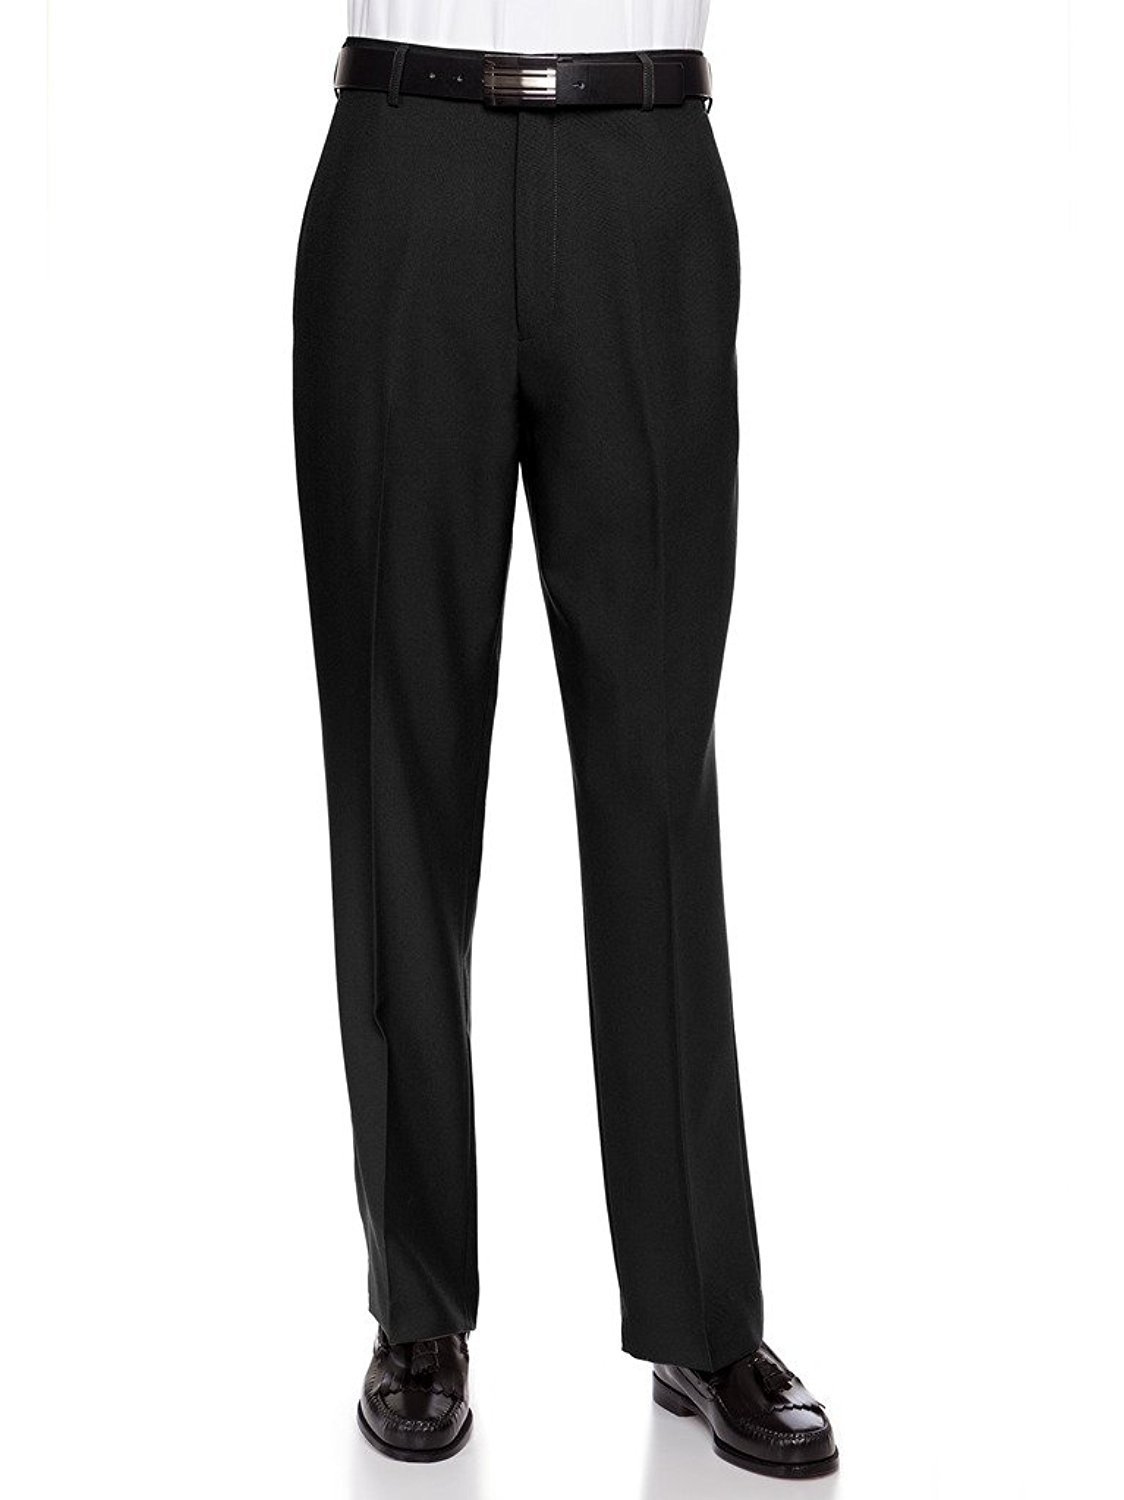 RGM Men's Flat Front Traditional Fit Dress Pant